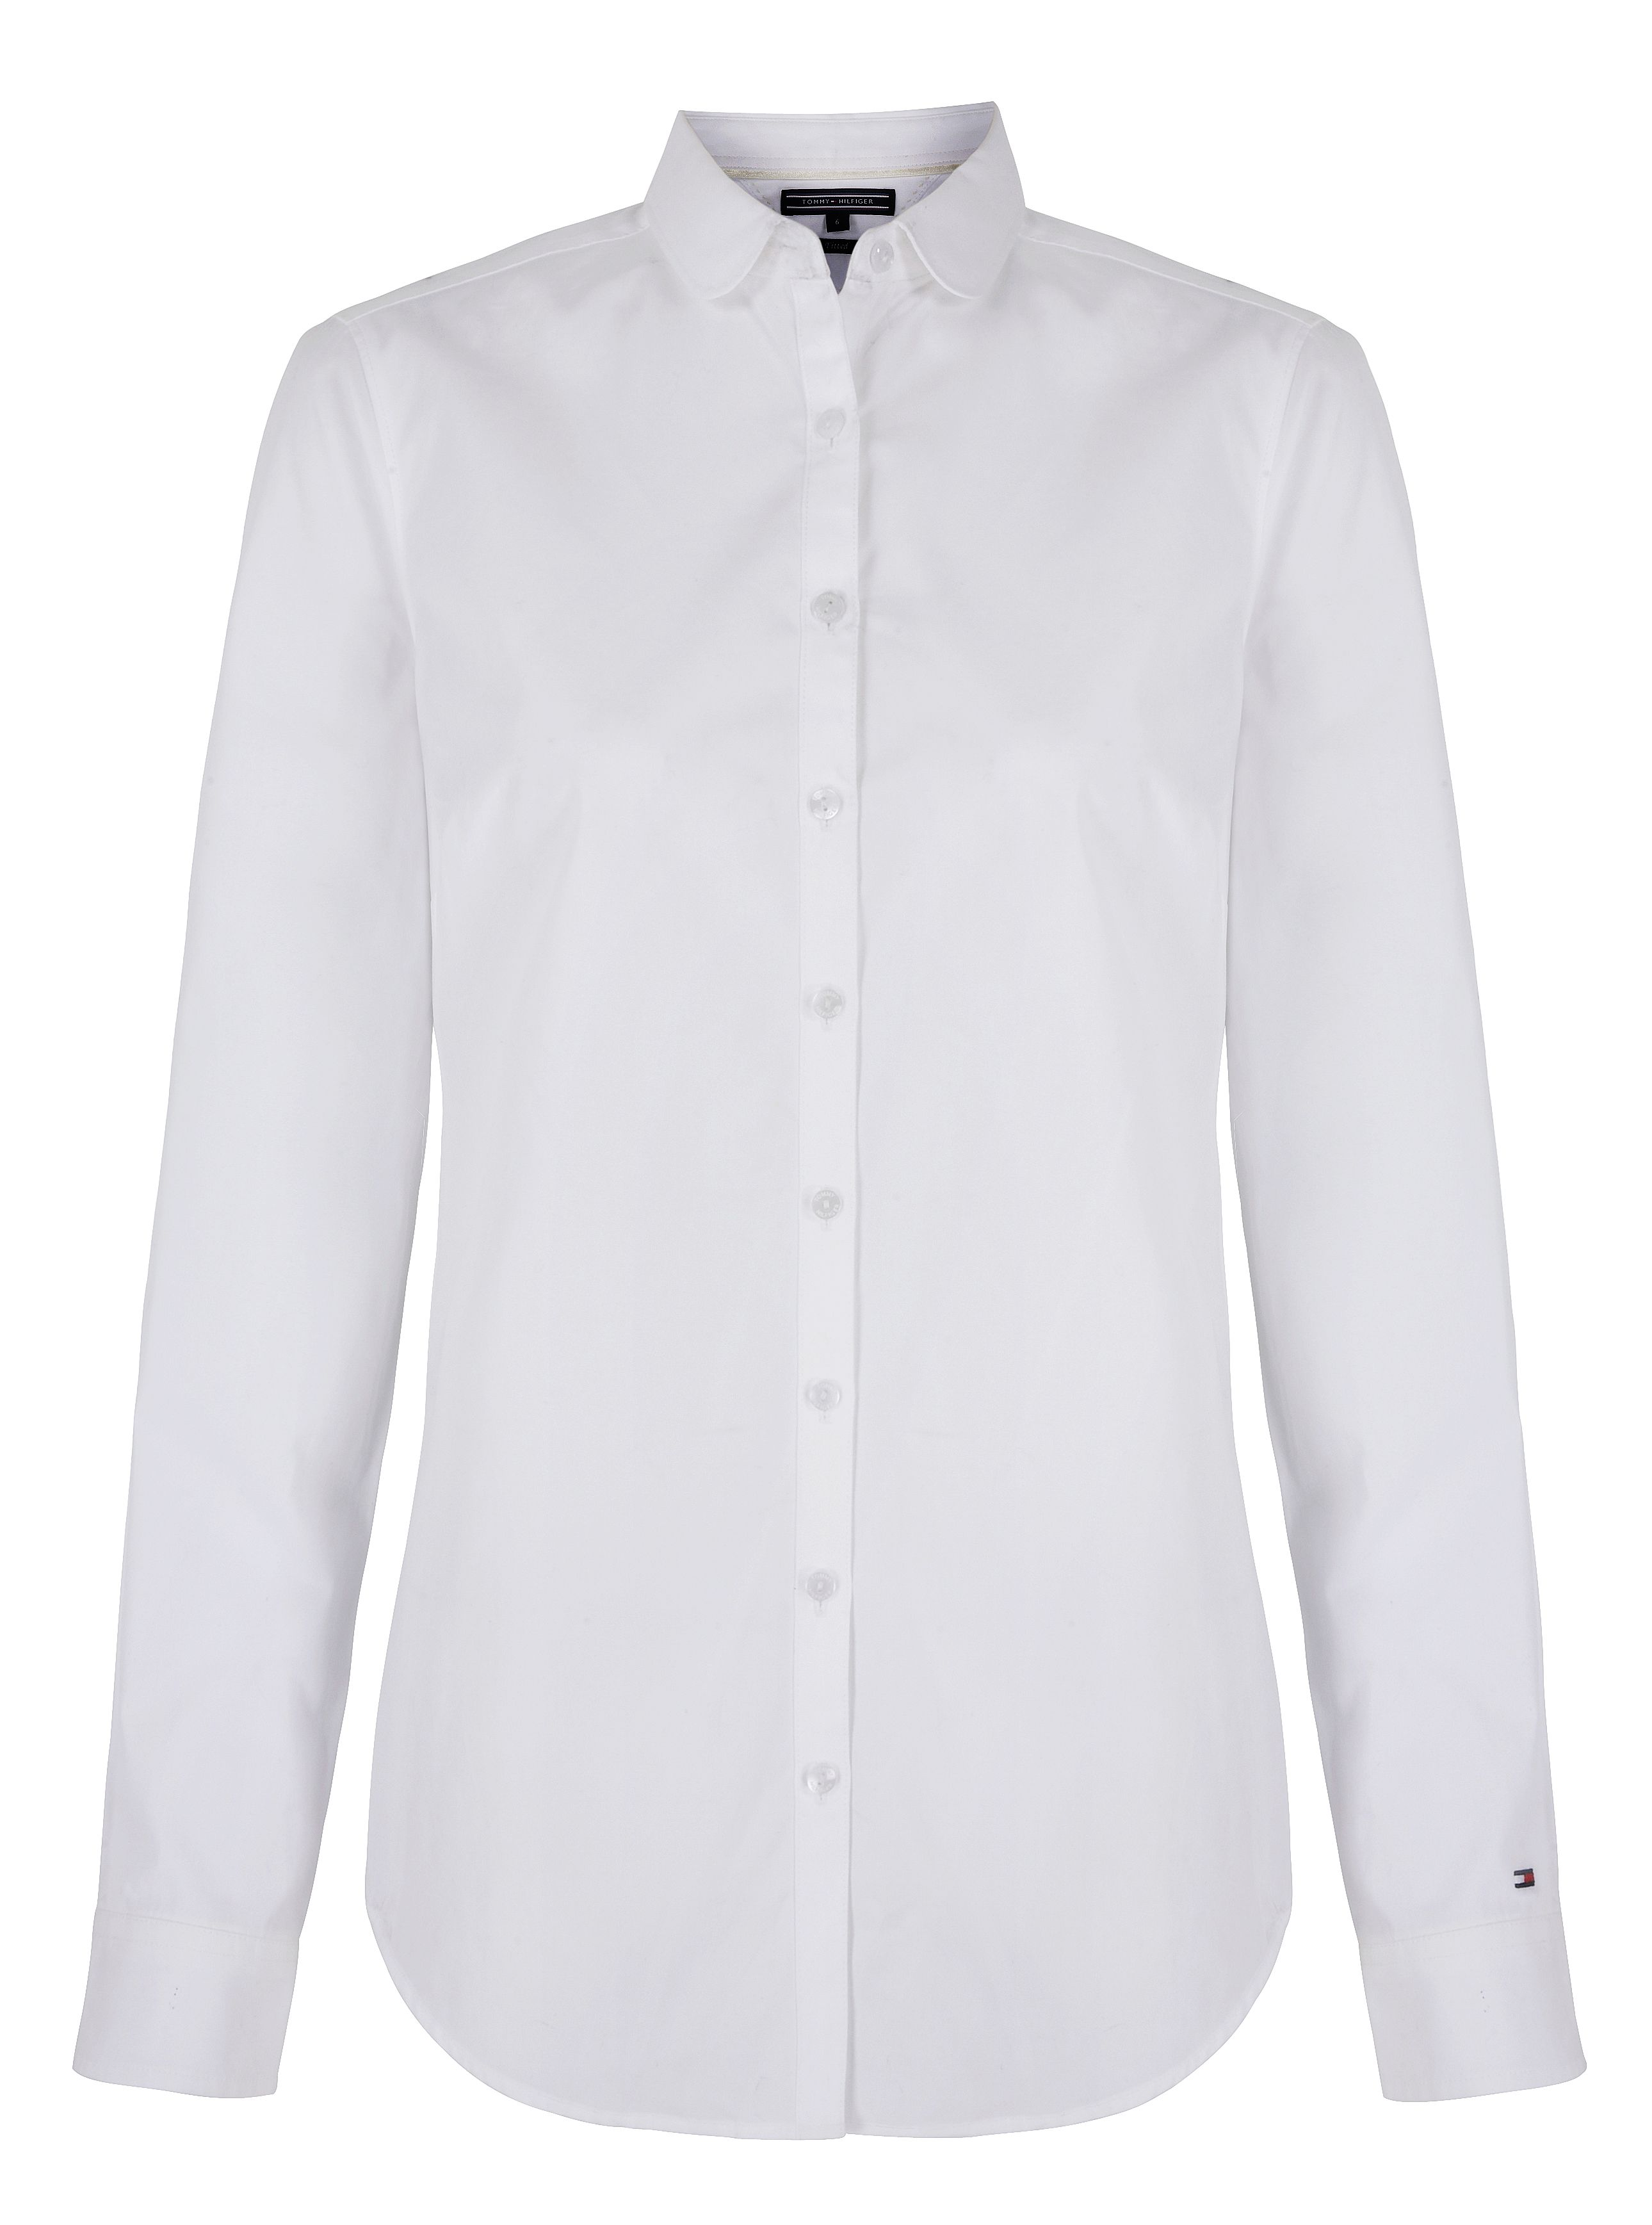 Kathi long sleeve shirt